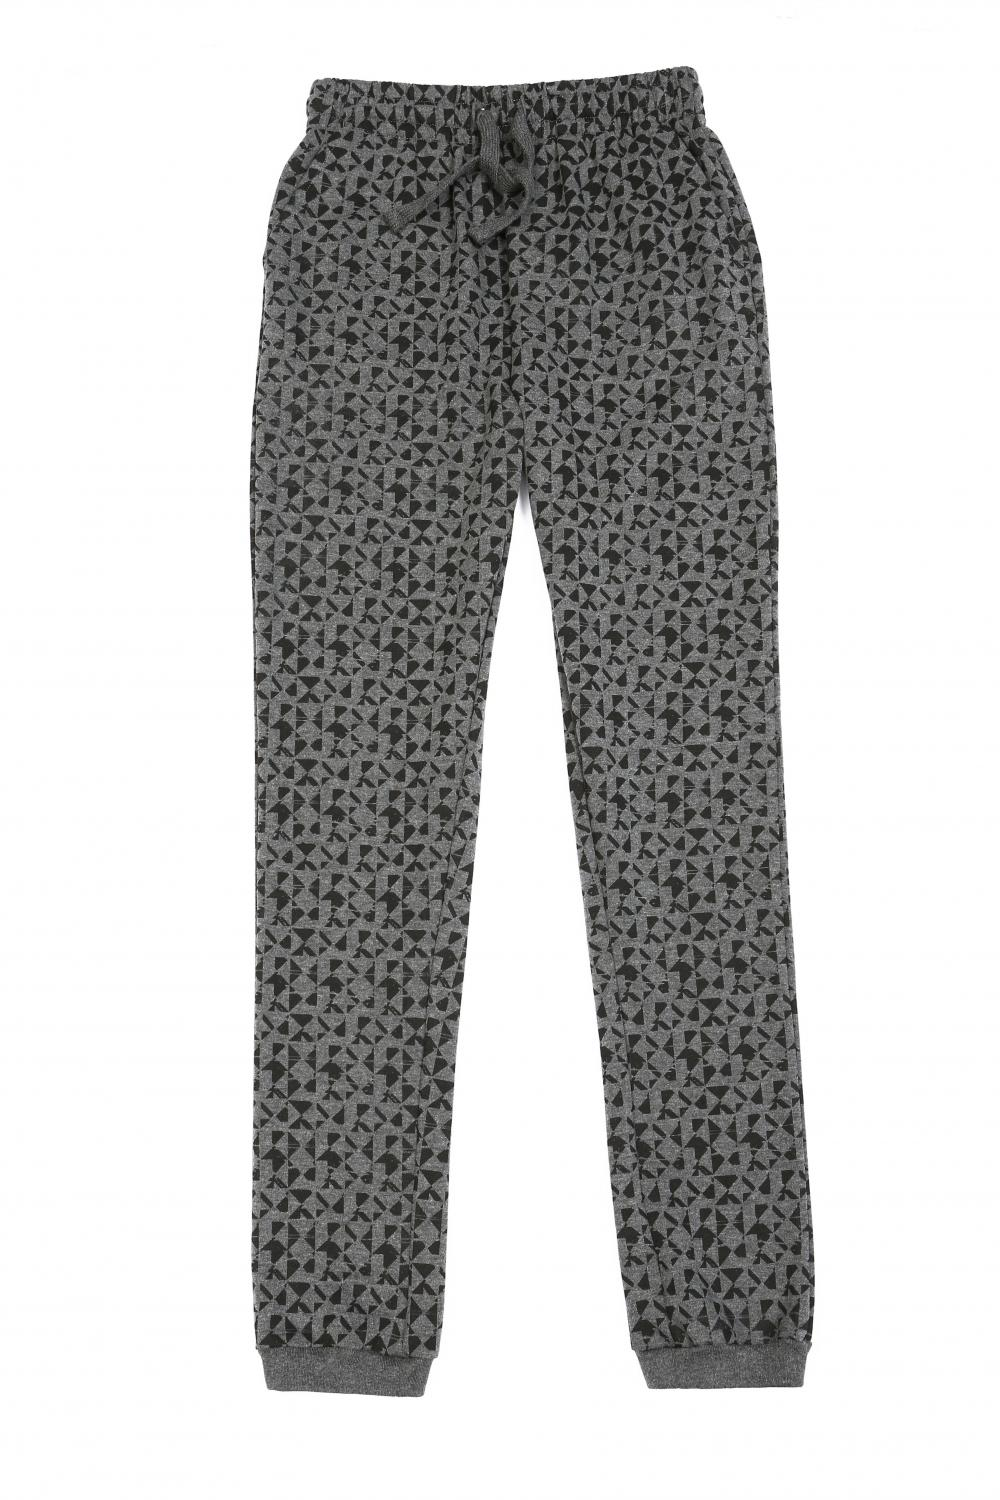 Men's fashion printed pants